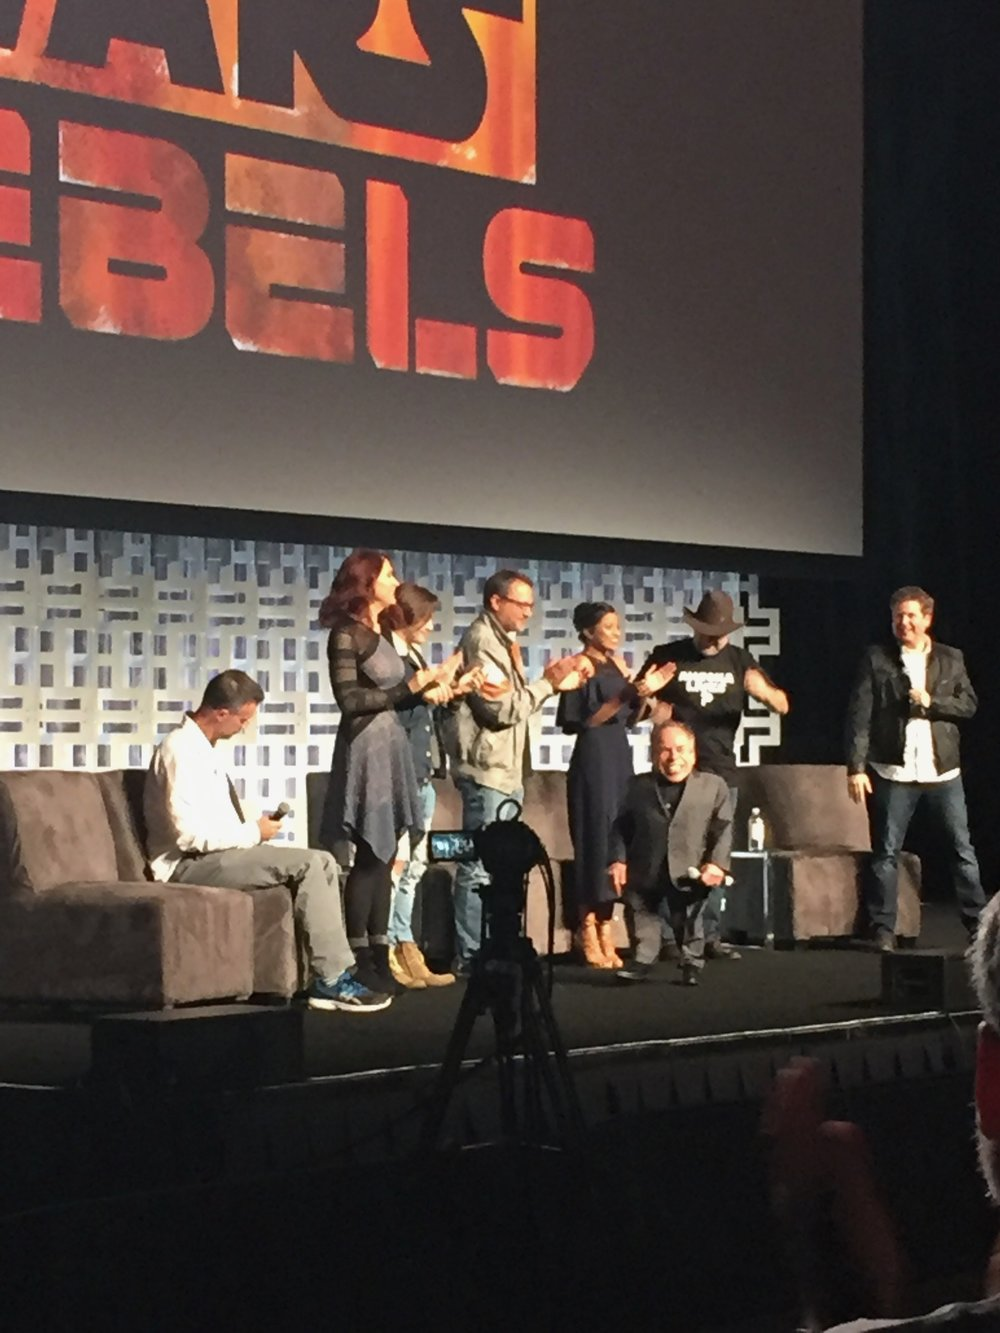 We had second row seats for the Star Wars Rebels panel